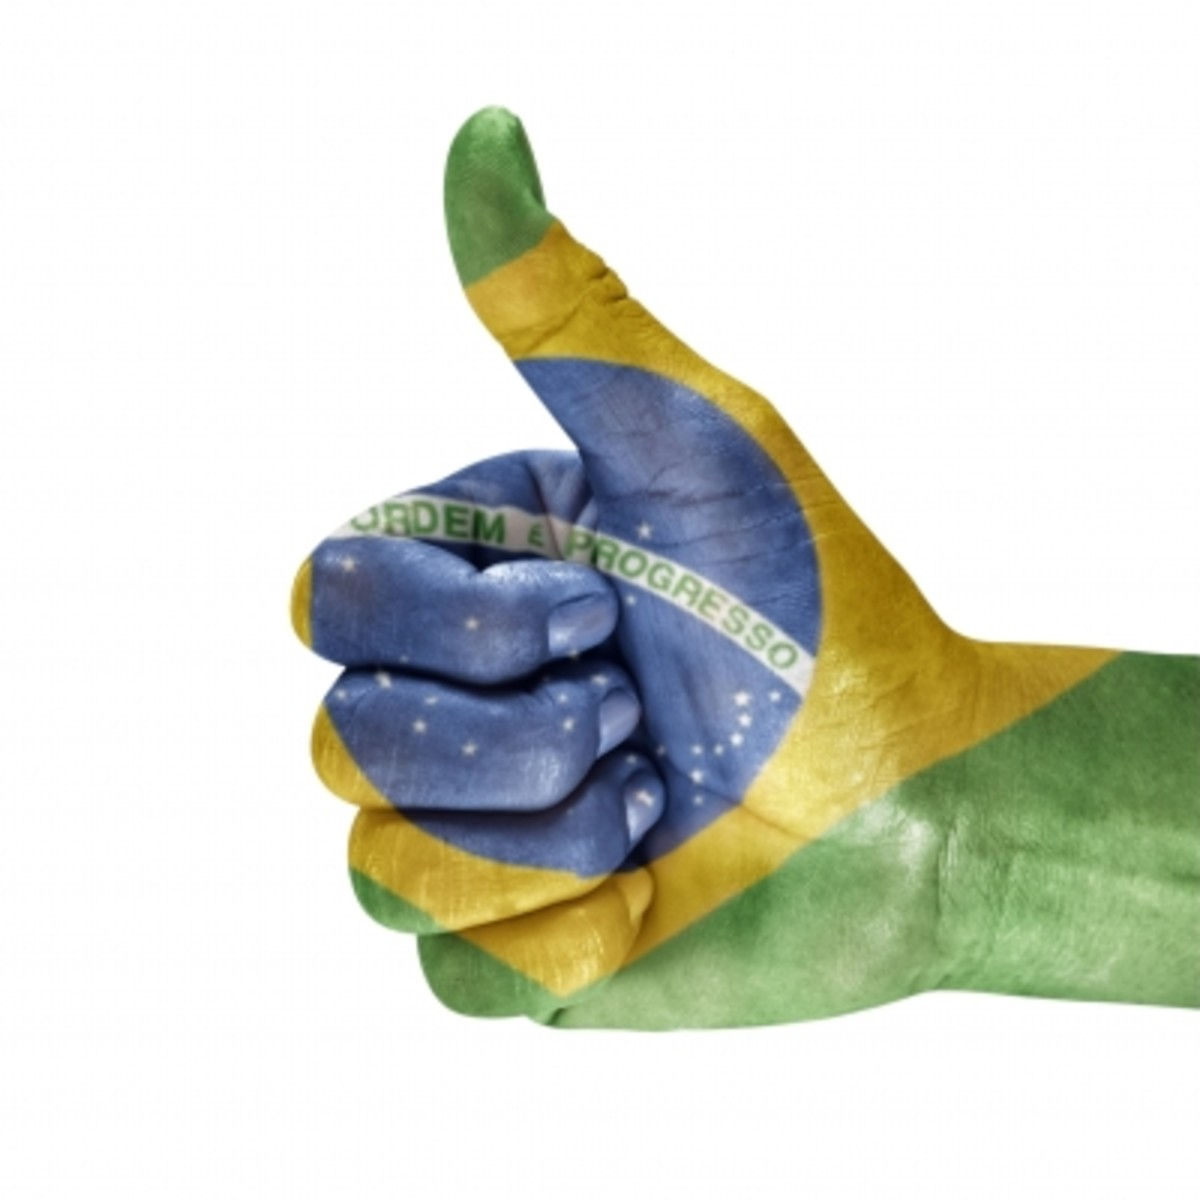 Thumbs up for Brazil